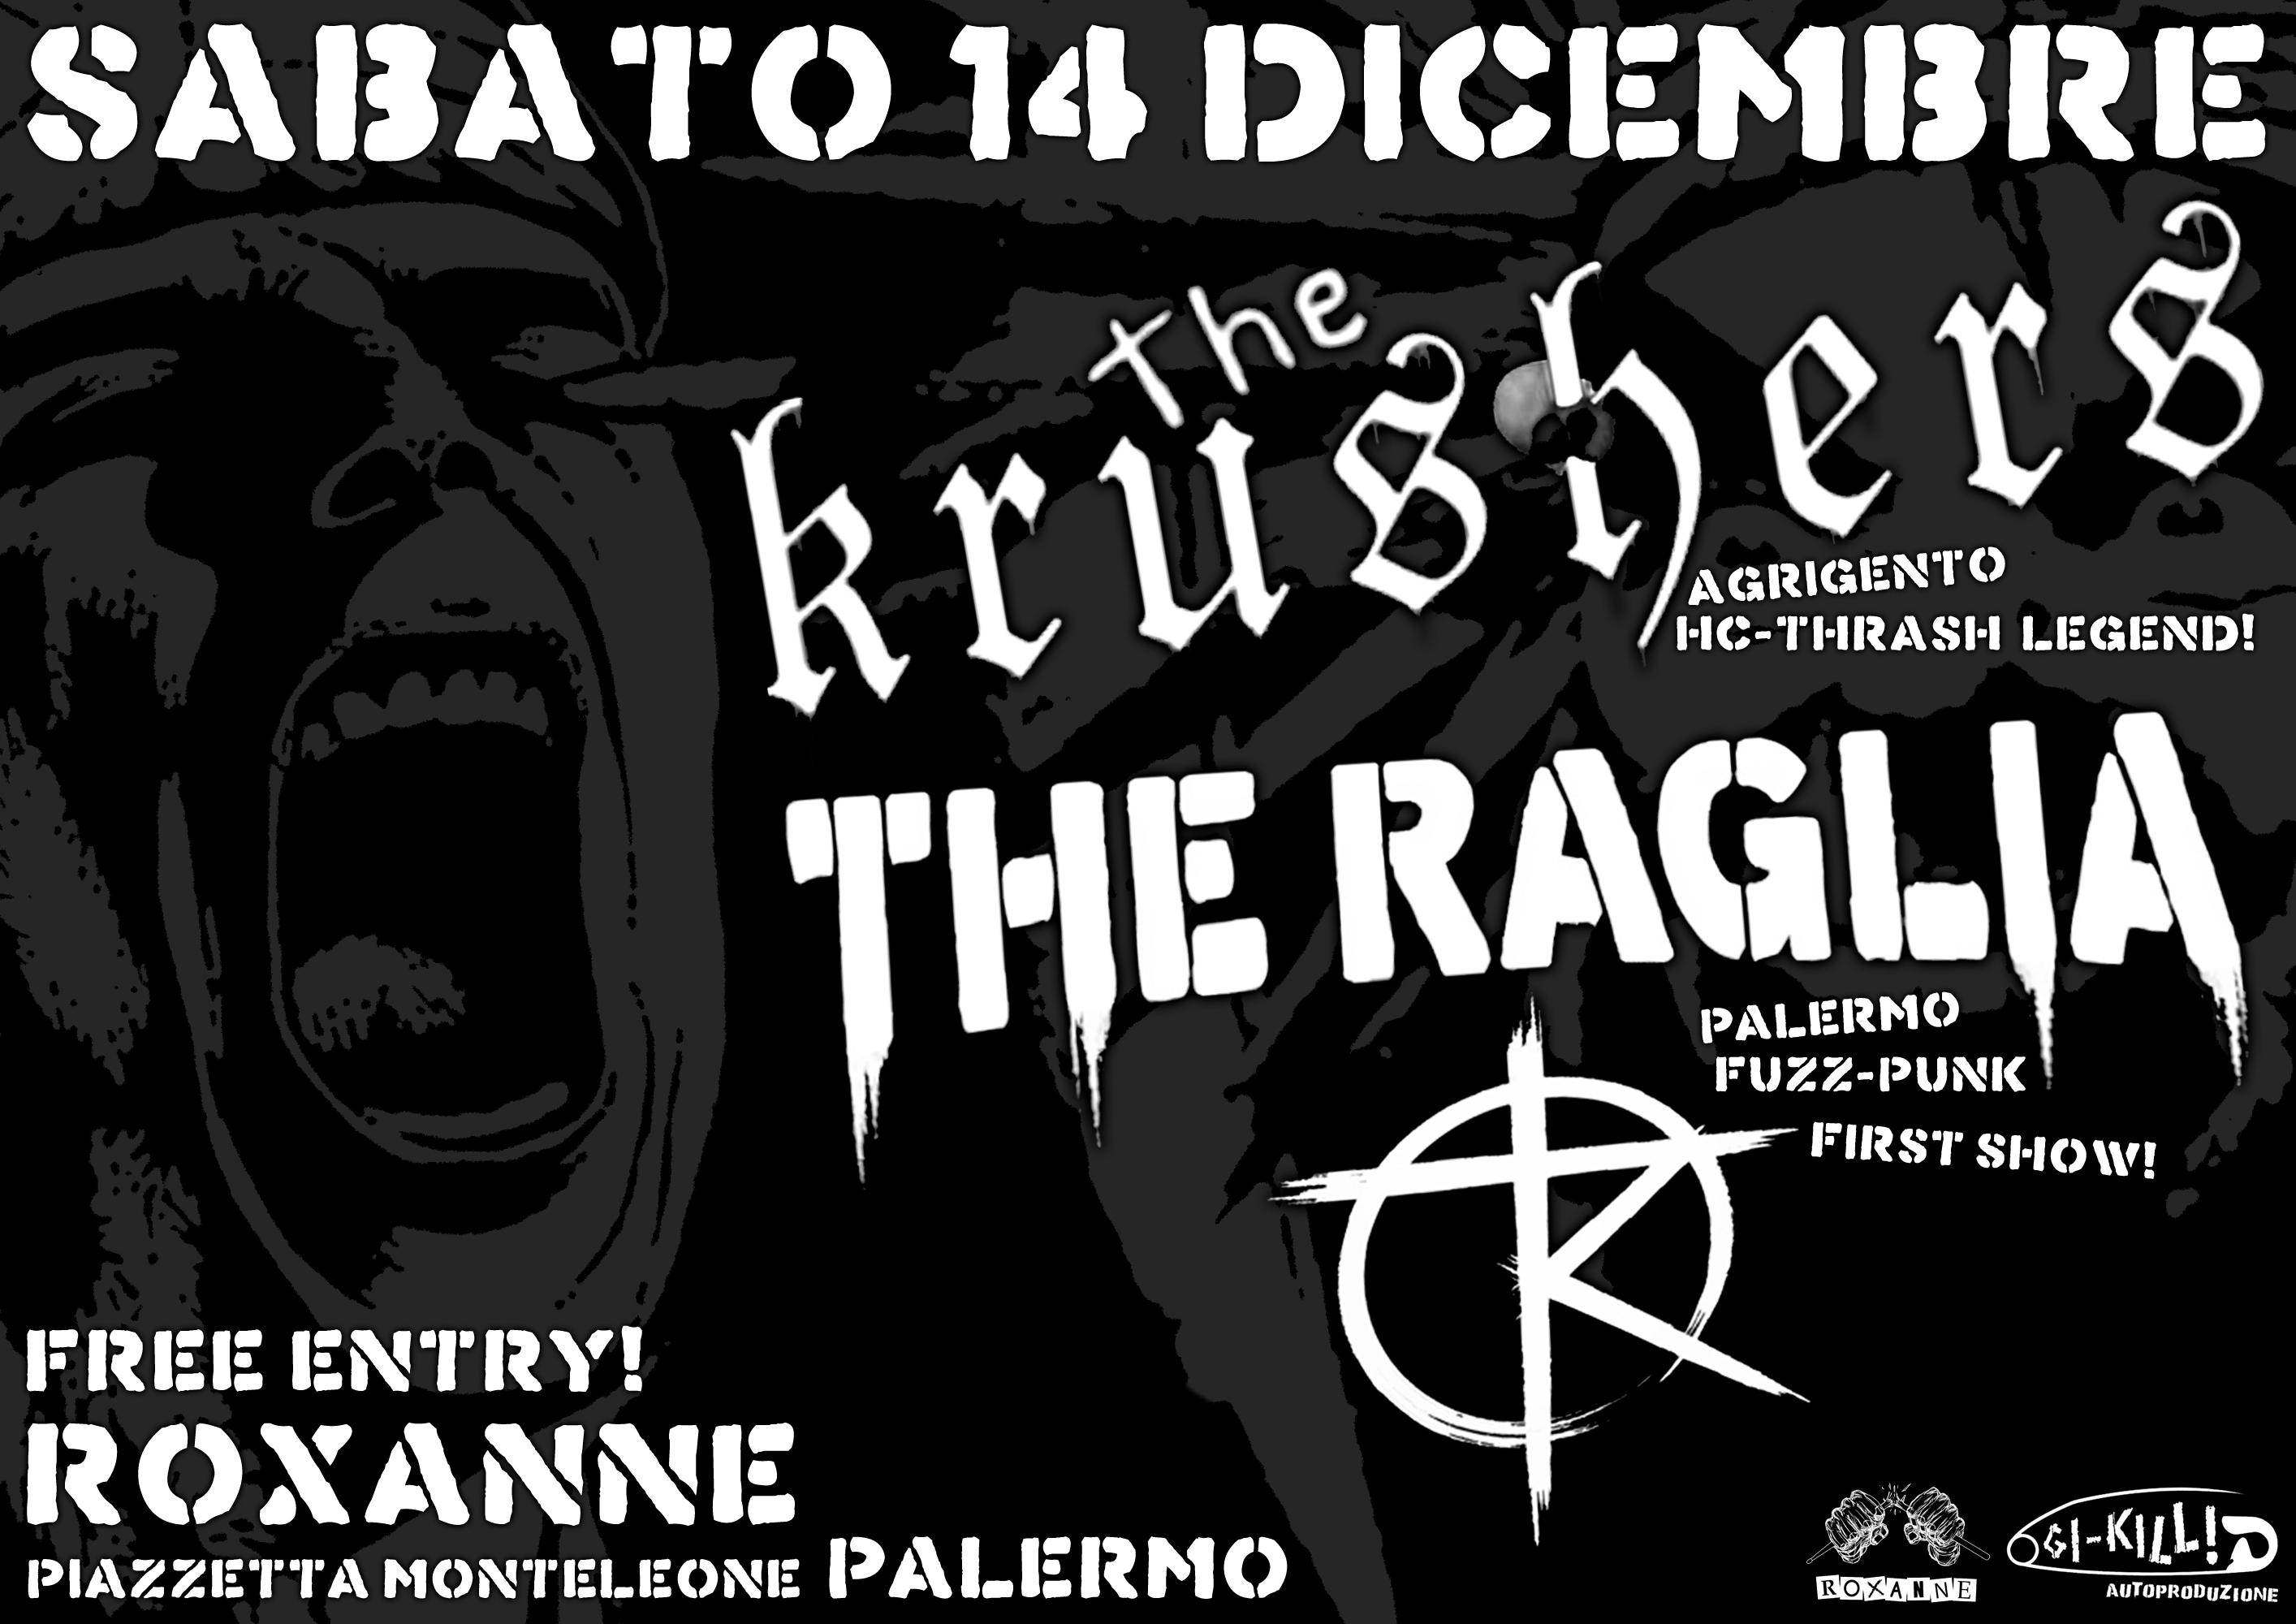 The Krushers + The Raglia